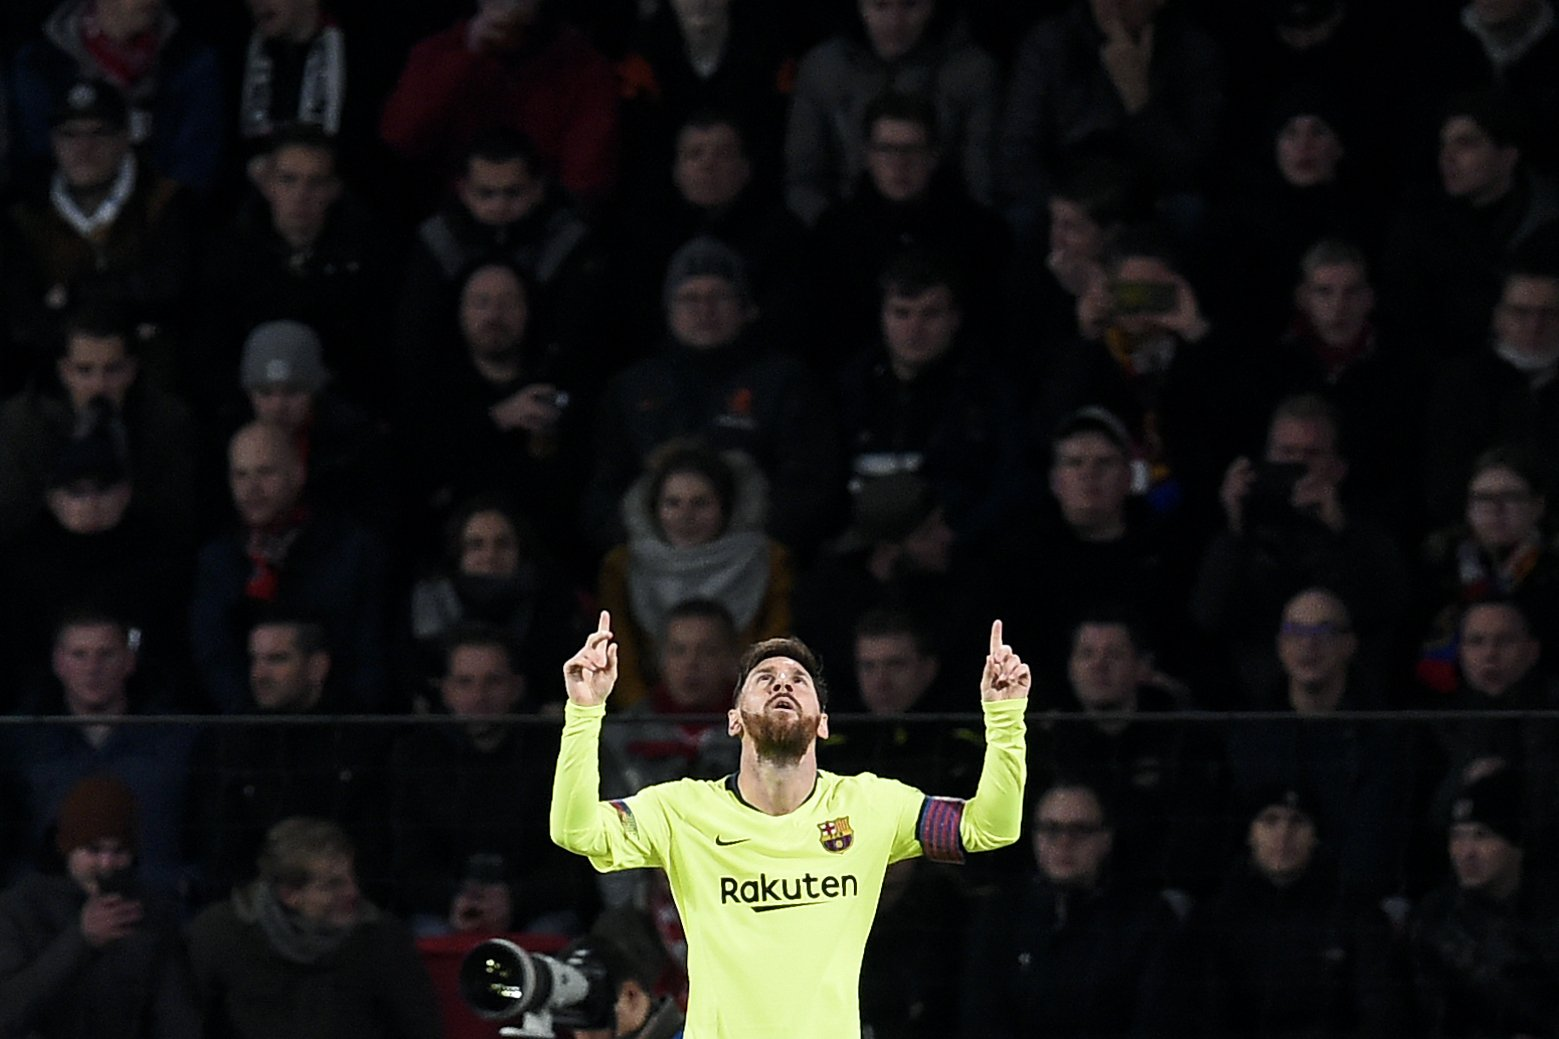 Champions League roundup: Messi's spectacular solo goal helps Barça through